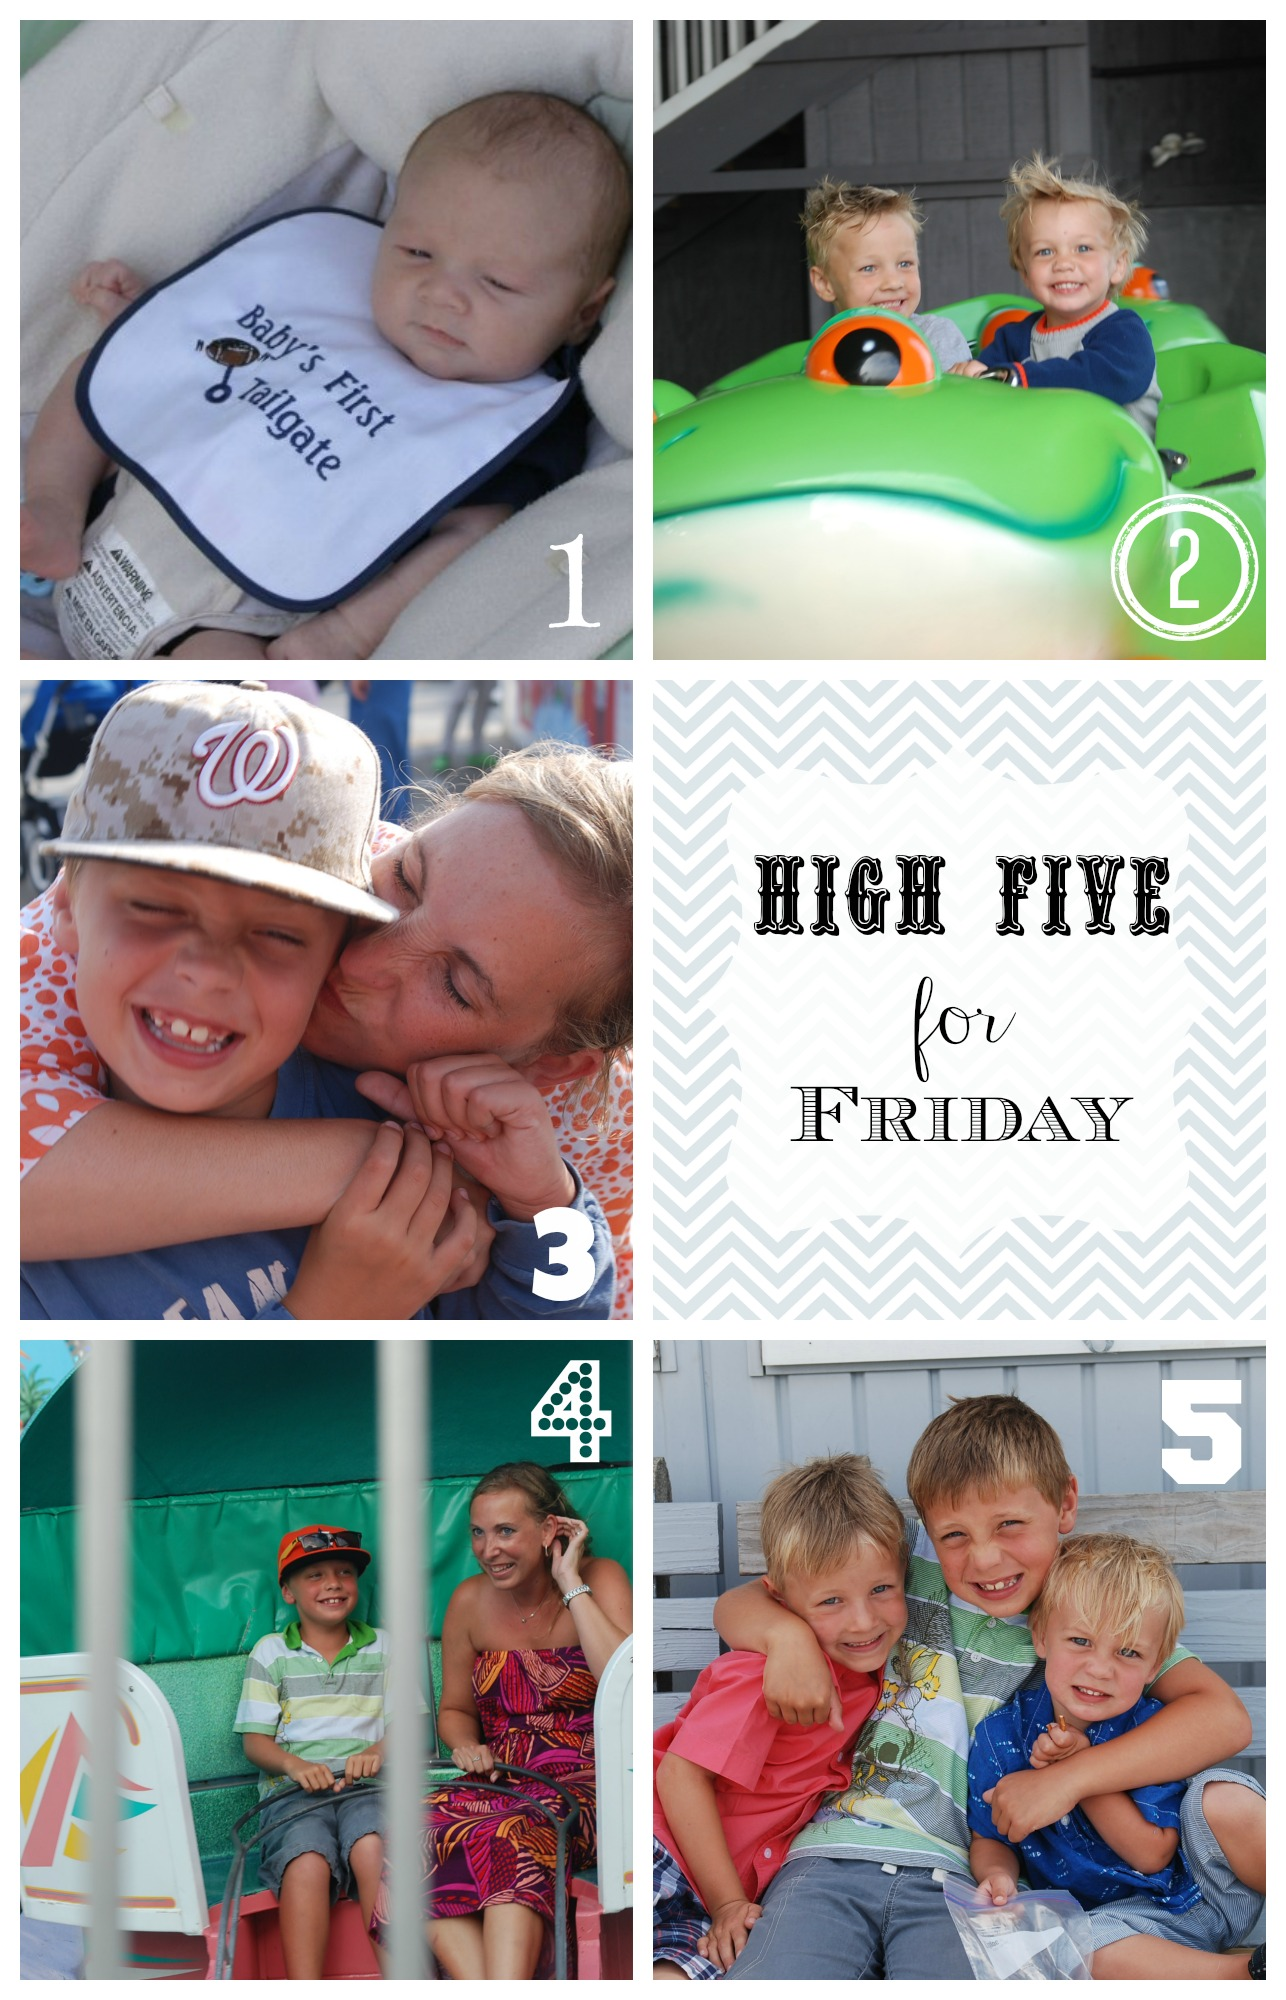 High Five for Friday 8-16